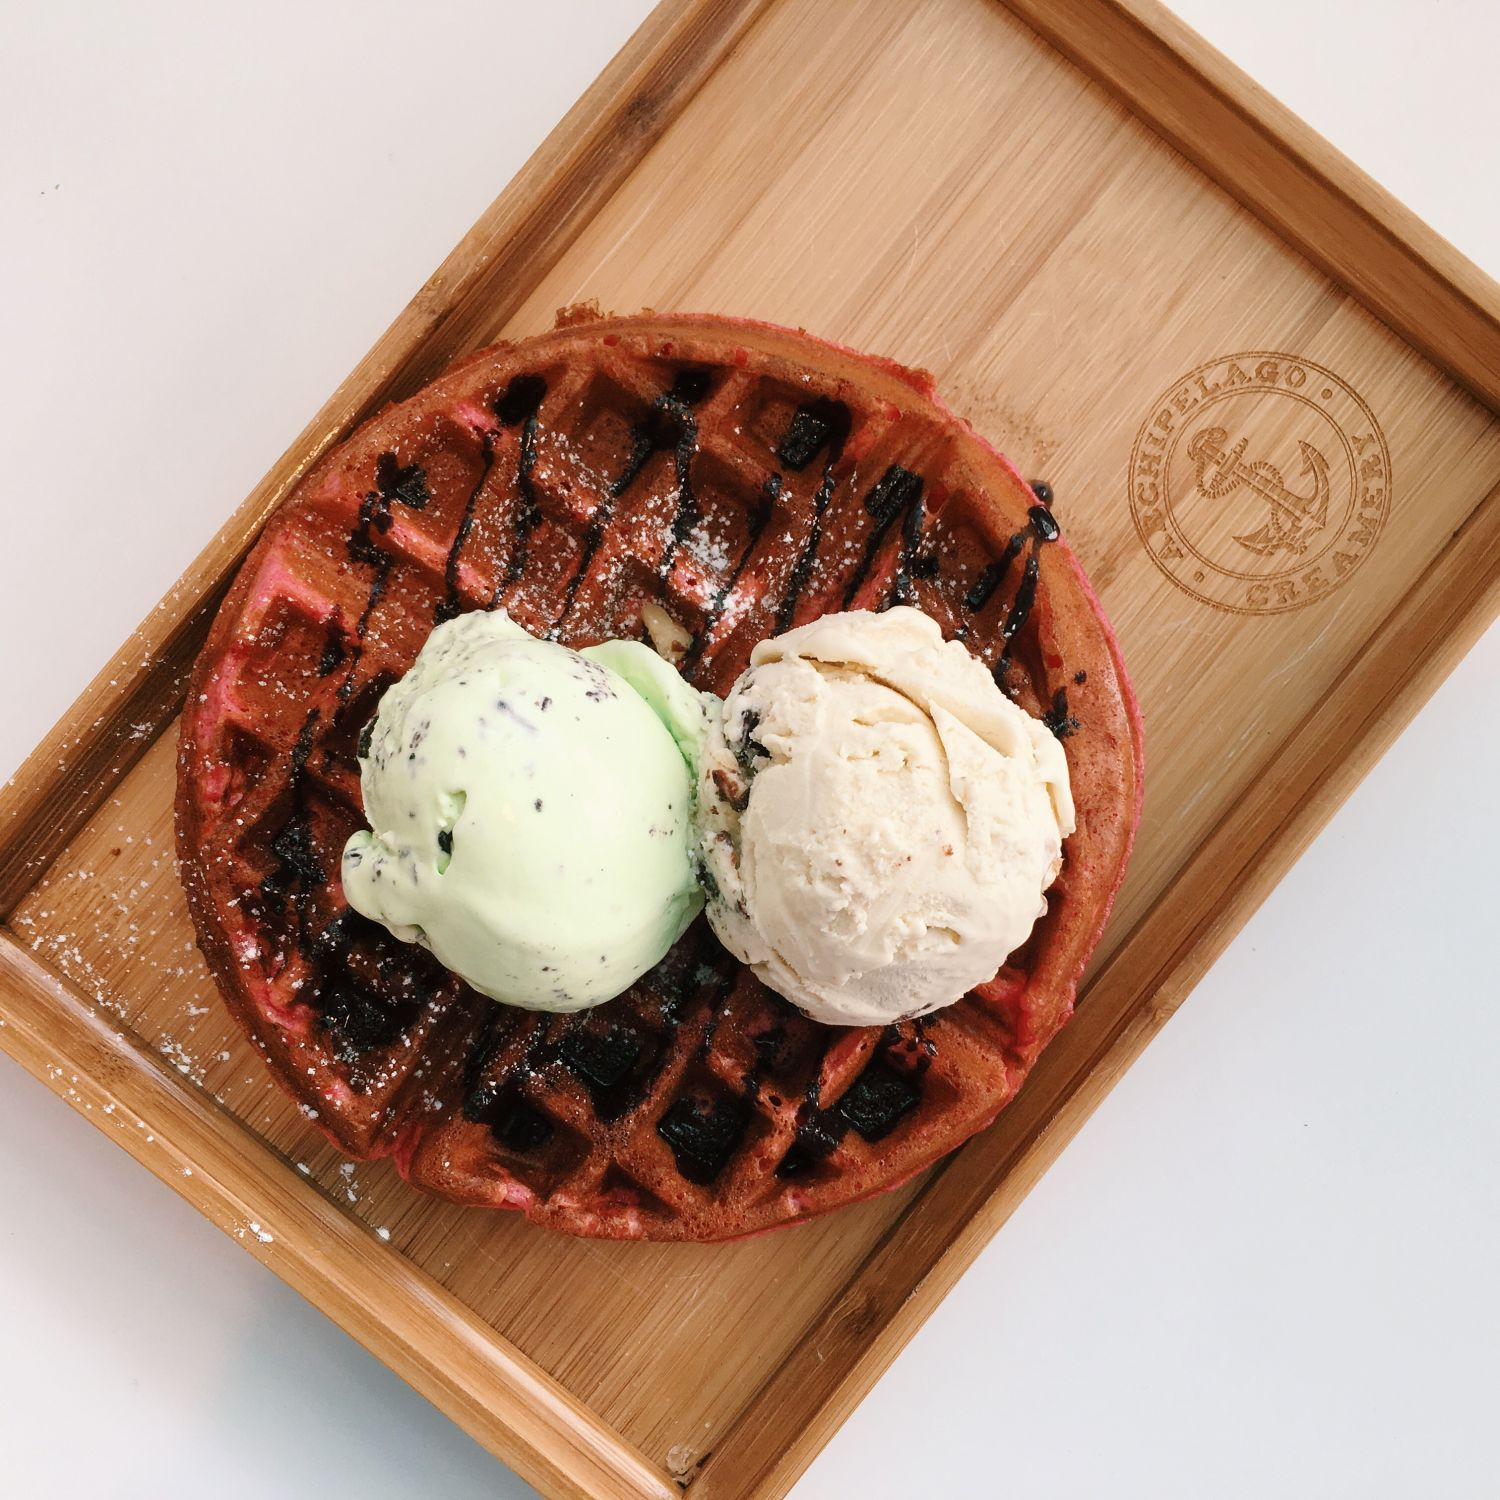 Red Velvet Waffle with Ice Cream - Archipelago Creamery